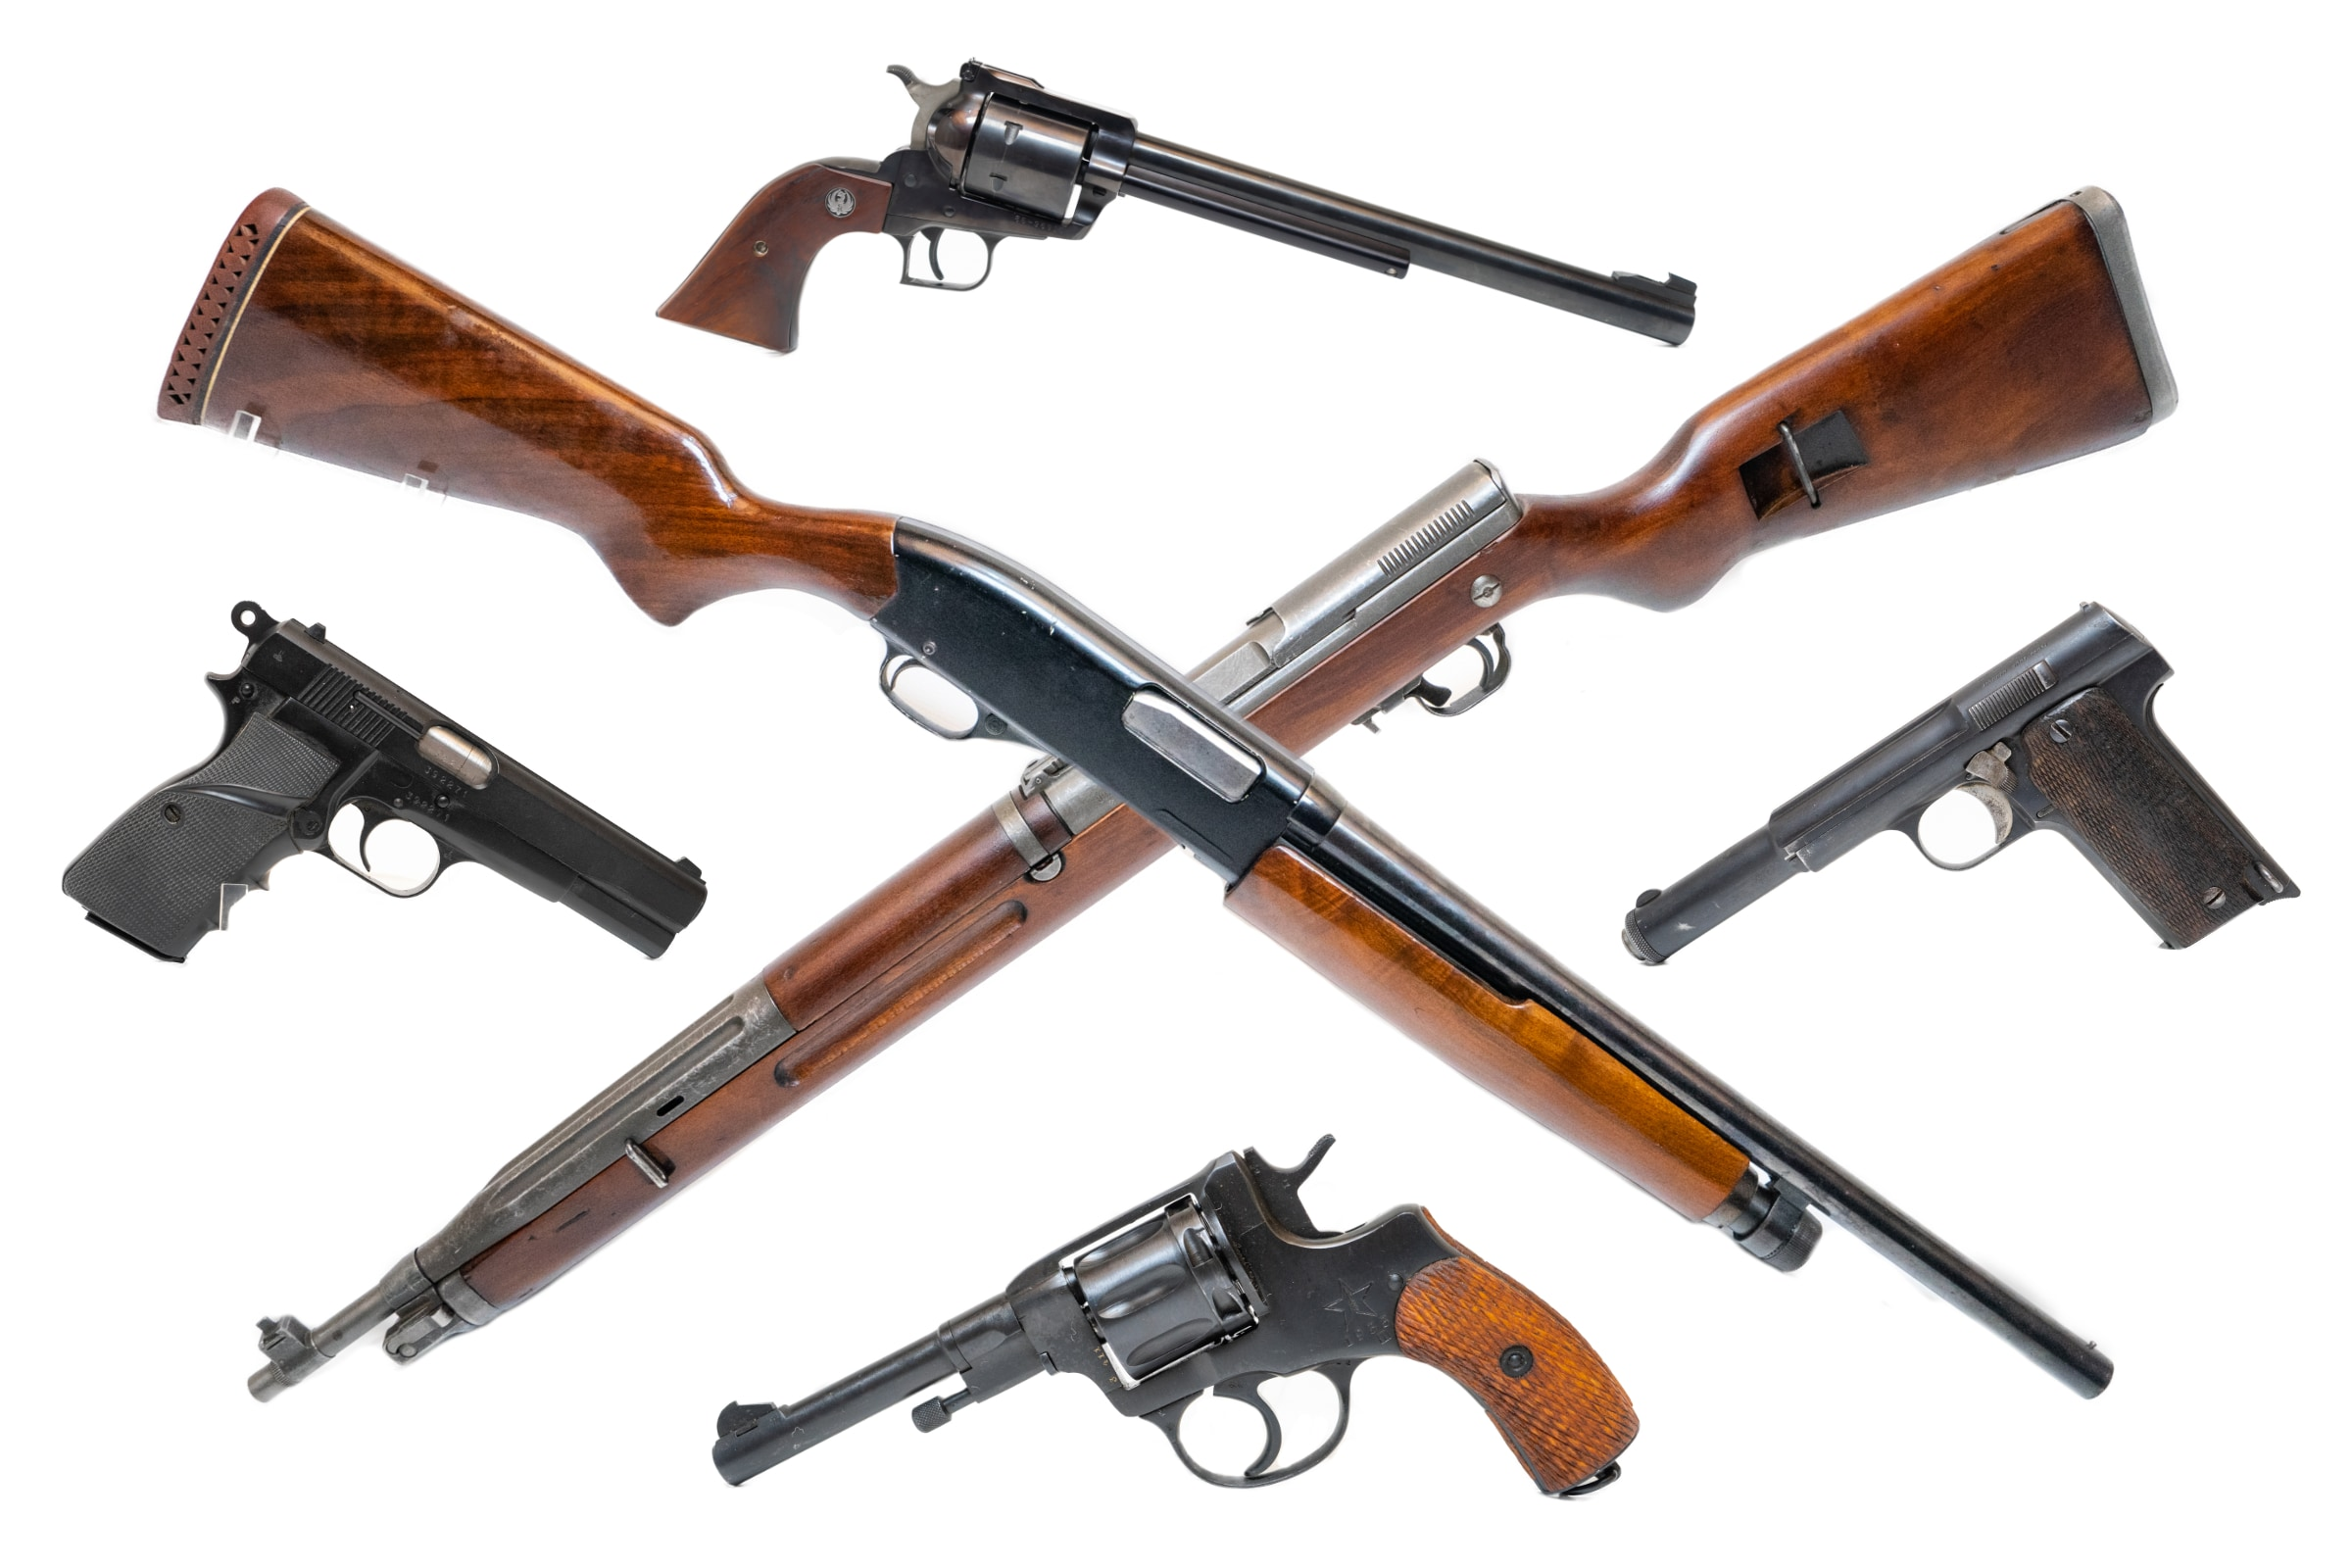 Lawrence Estate Firearm & Accessories Auction